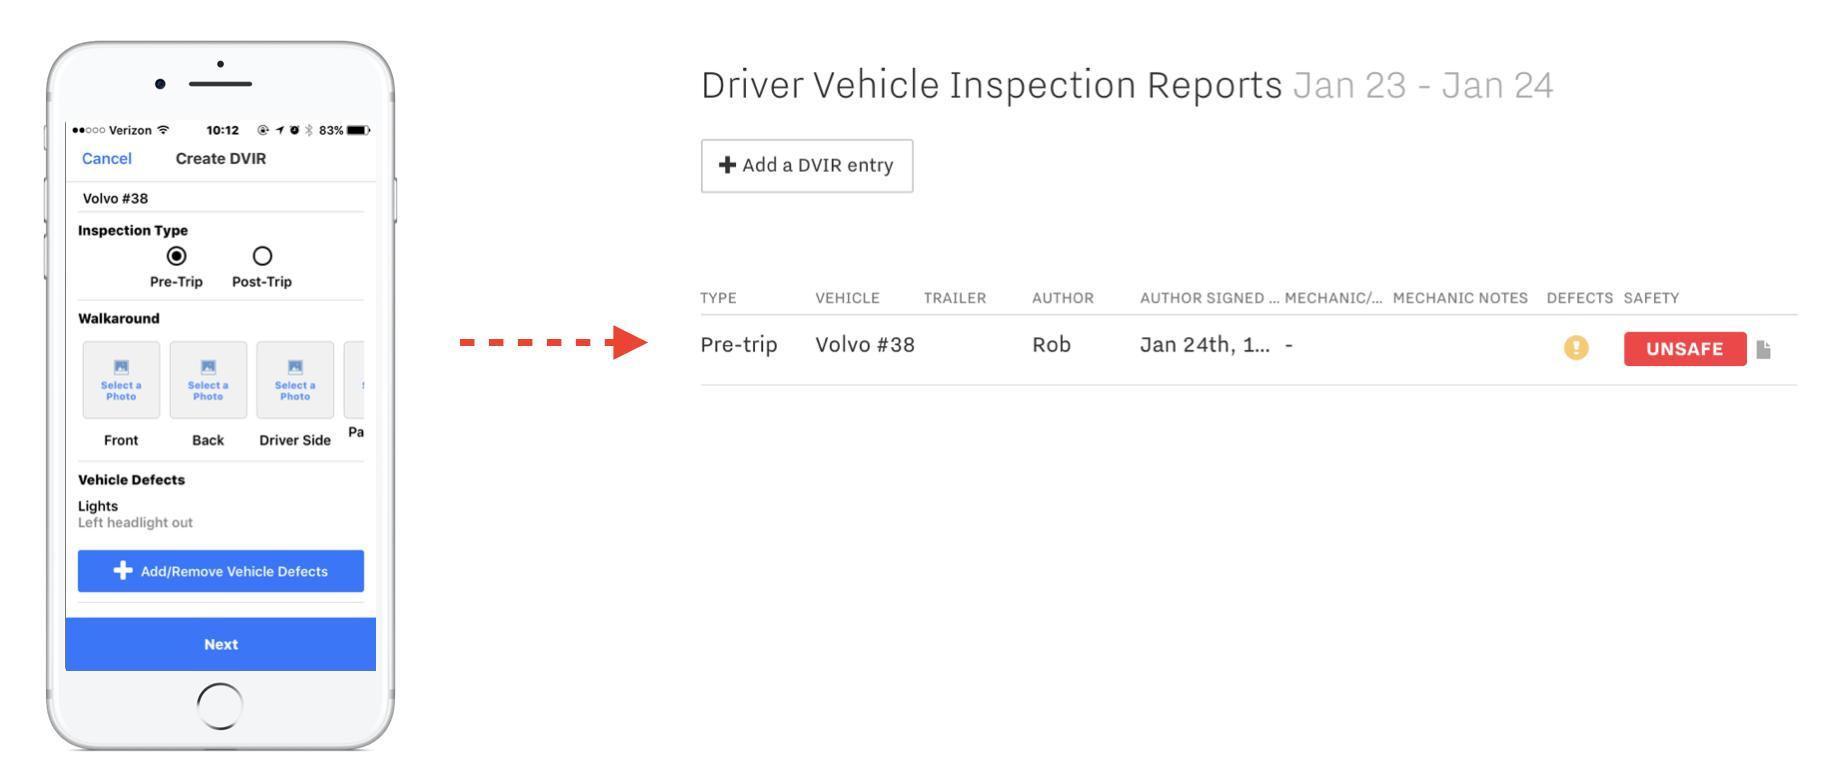 Drivers Daily Vehicle Inspection Report Form